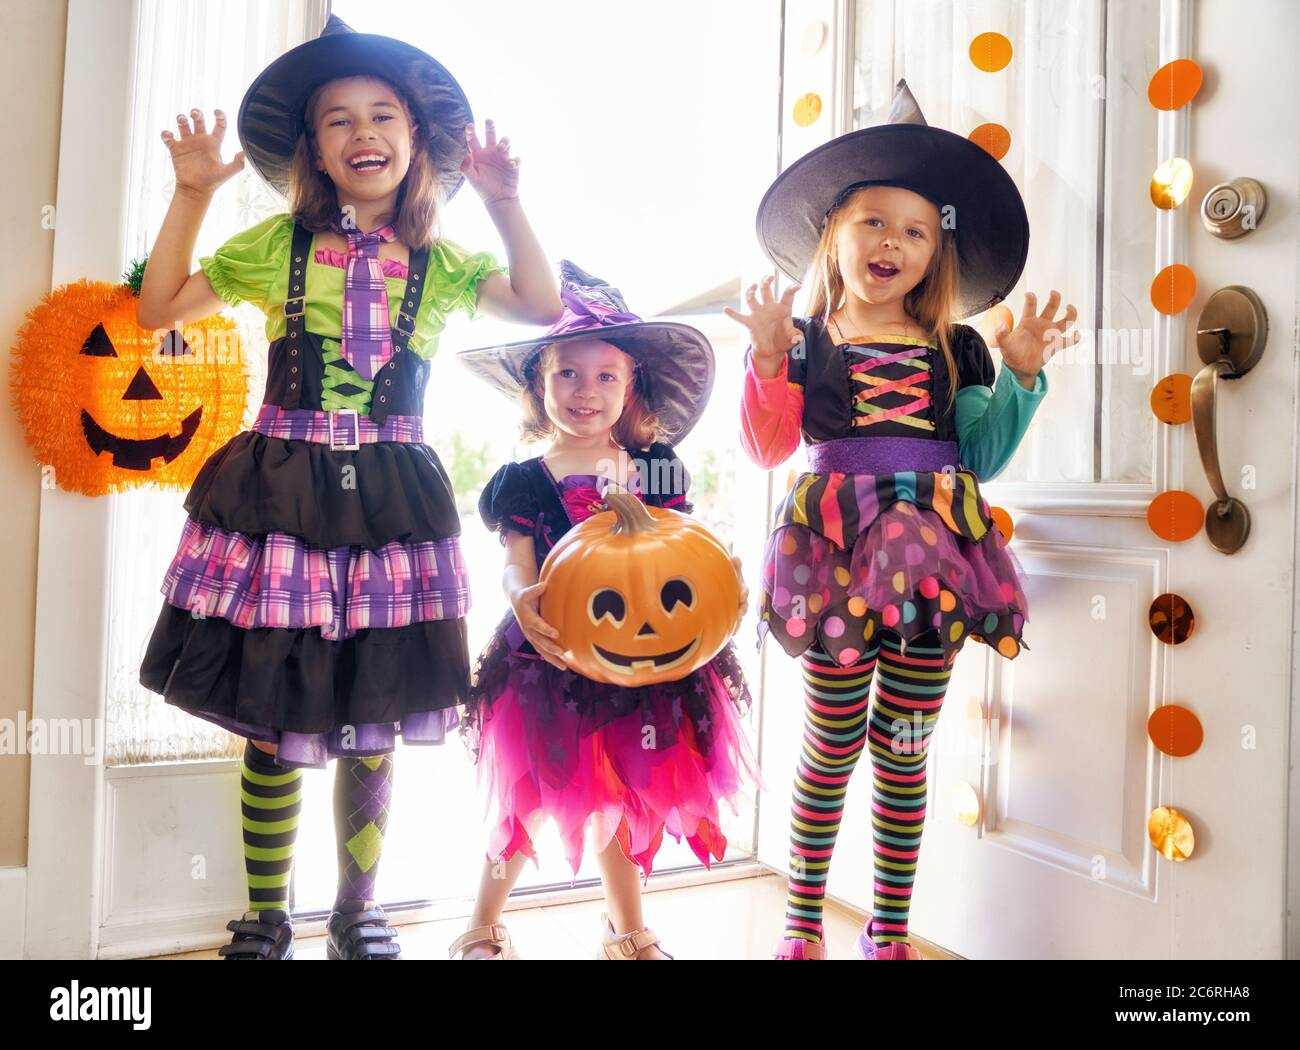 Happy Halloween Three Cute Little Laughing Girls In Witches Costumes Are Coming To The House For Sweets Stock Photo Alamy